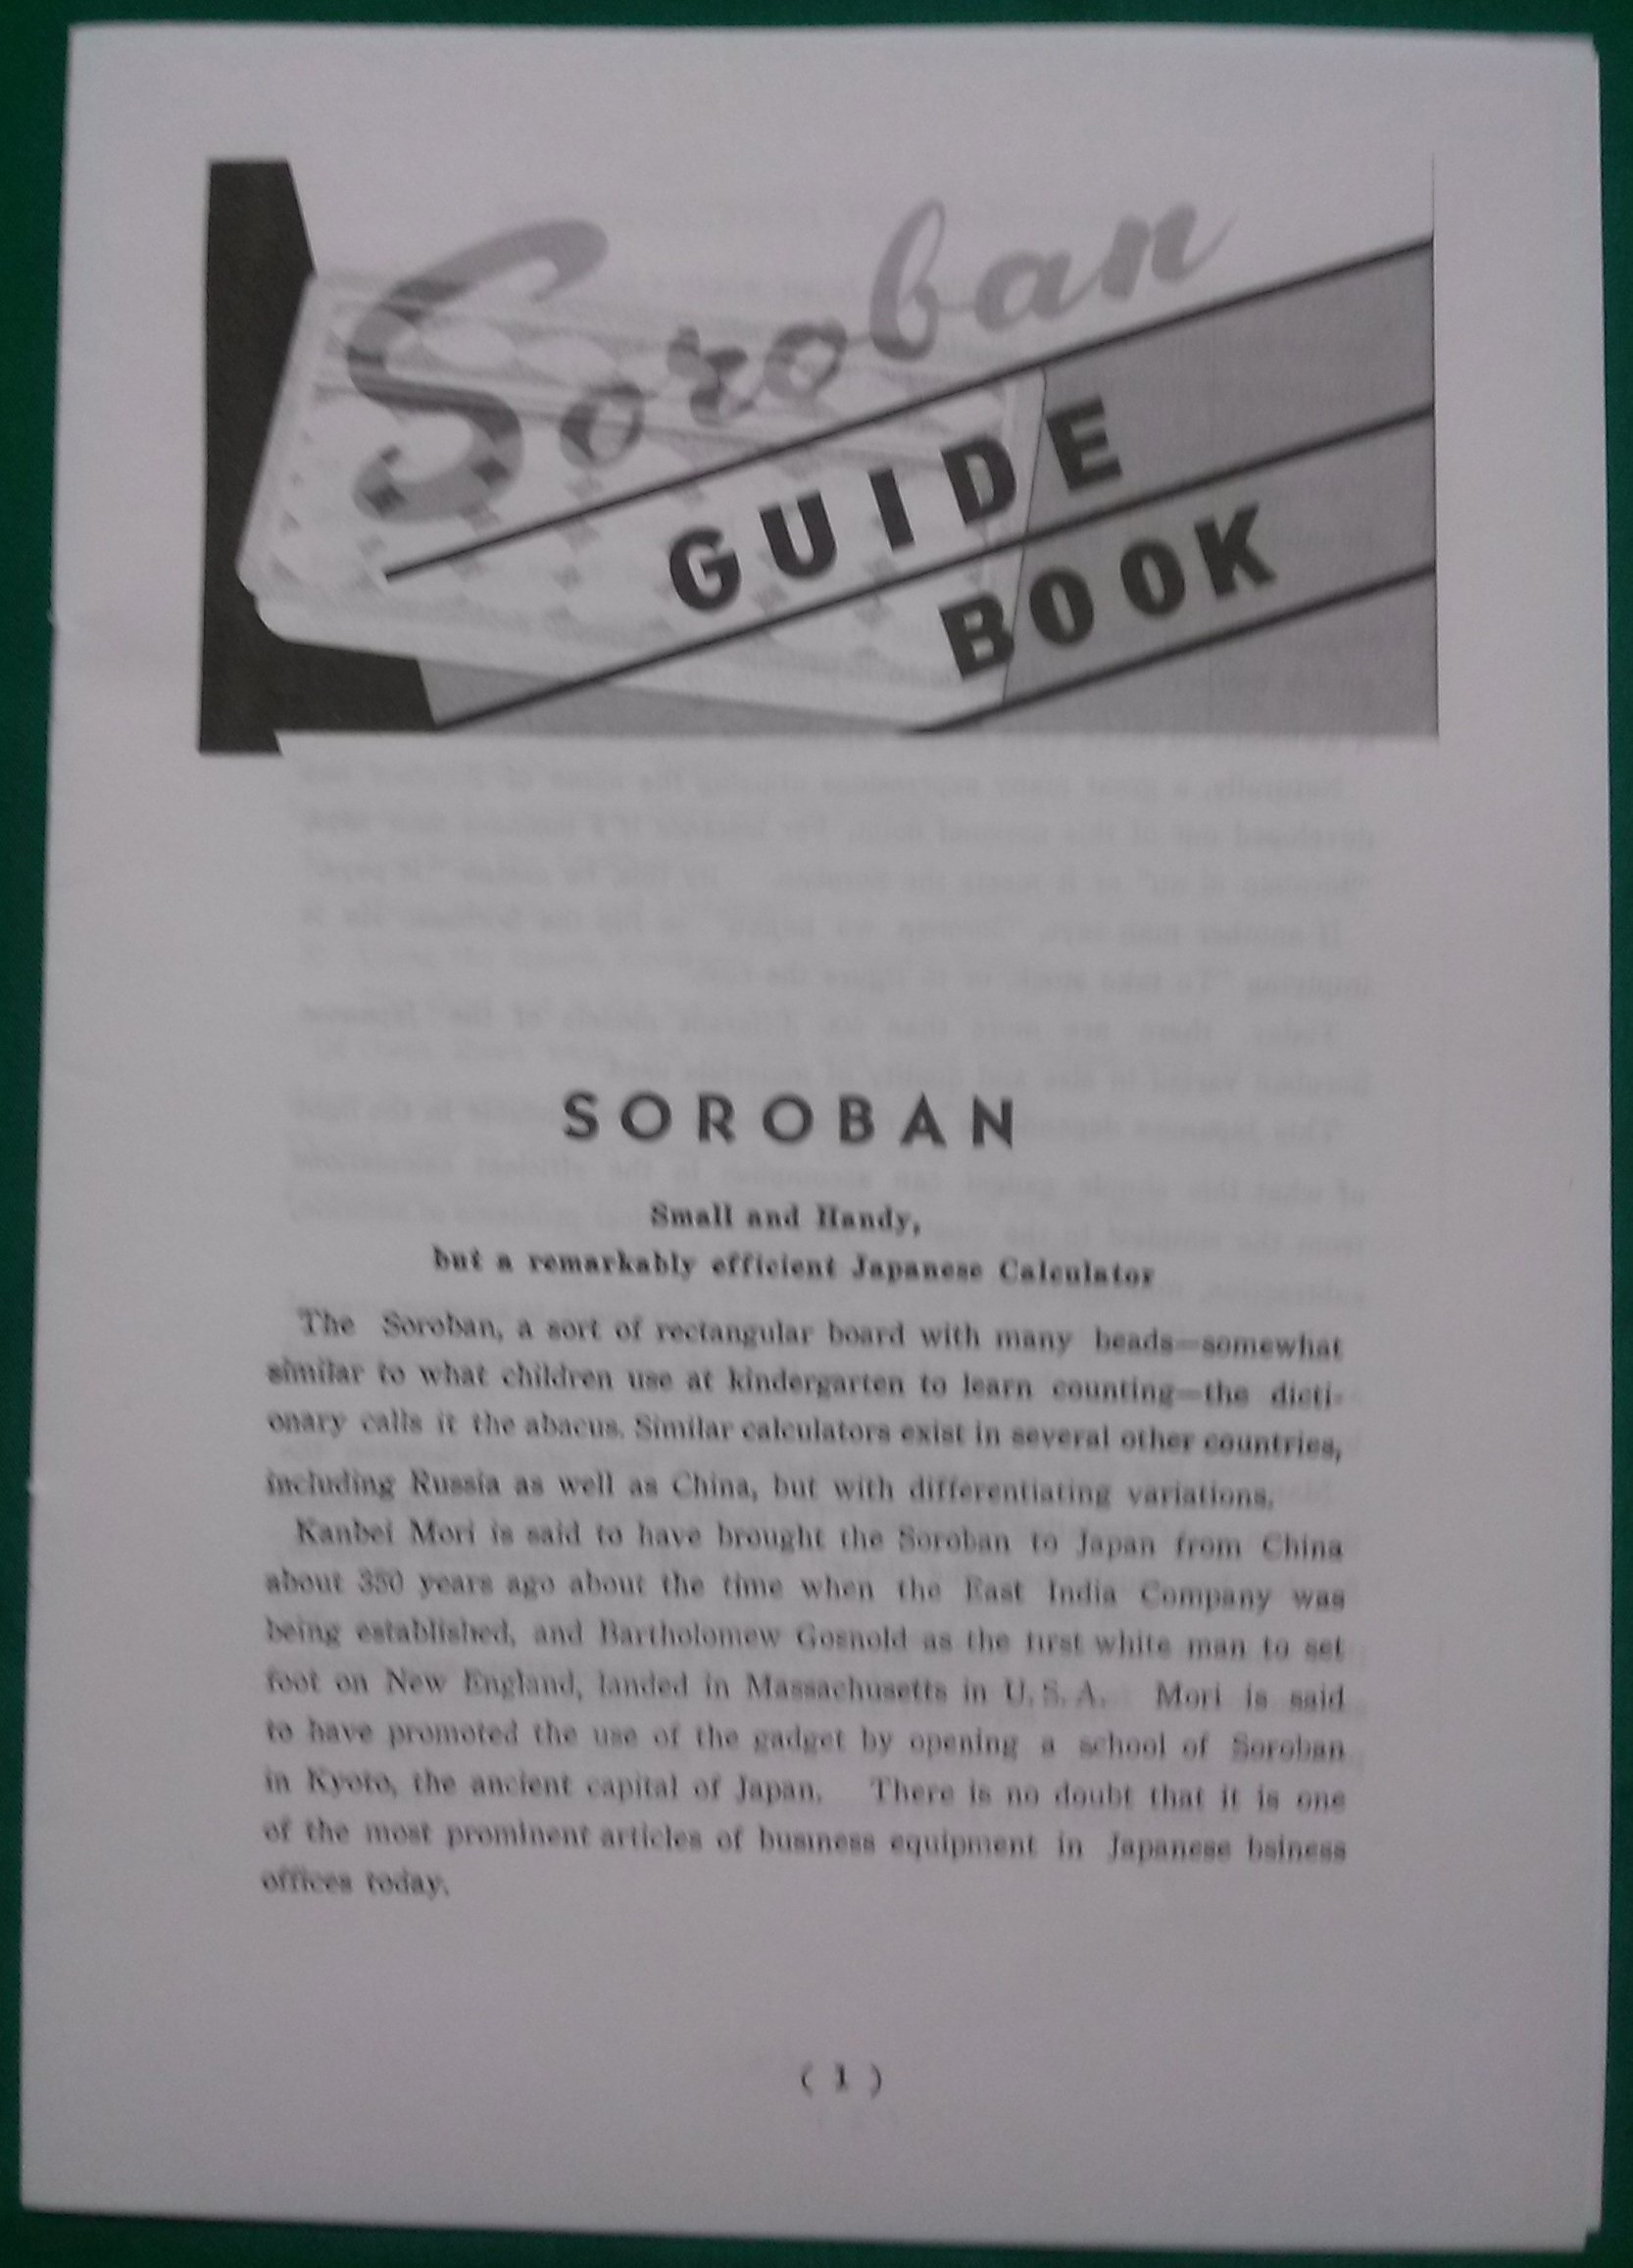 Soroban abacus guidebook in Honolulu, HI